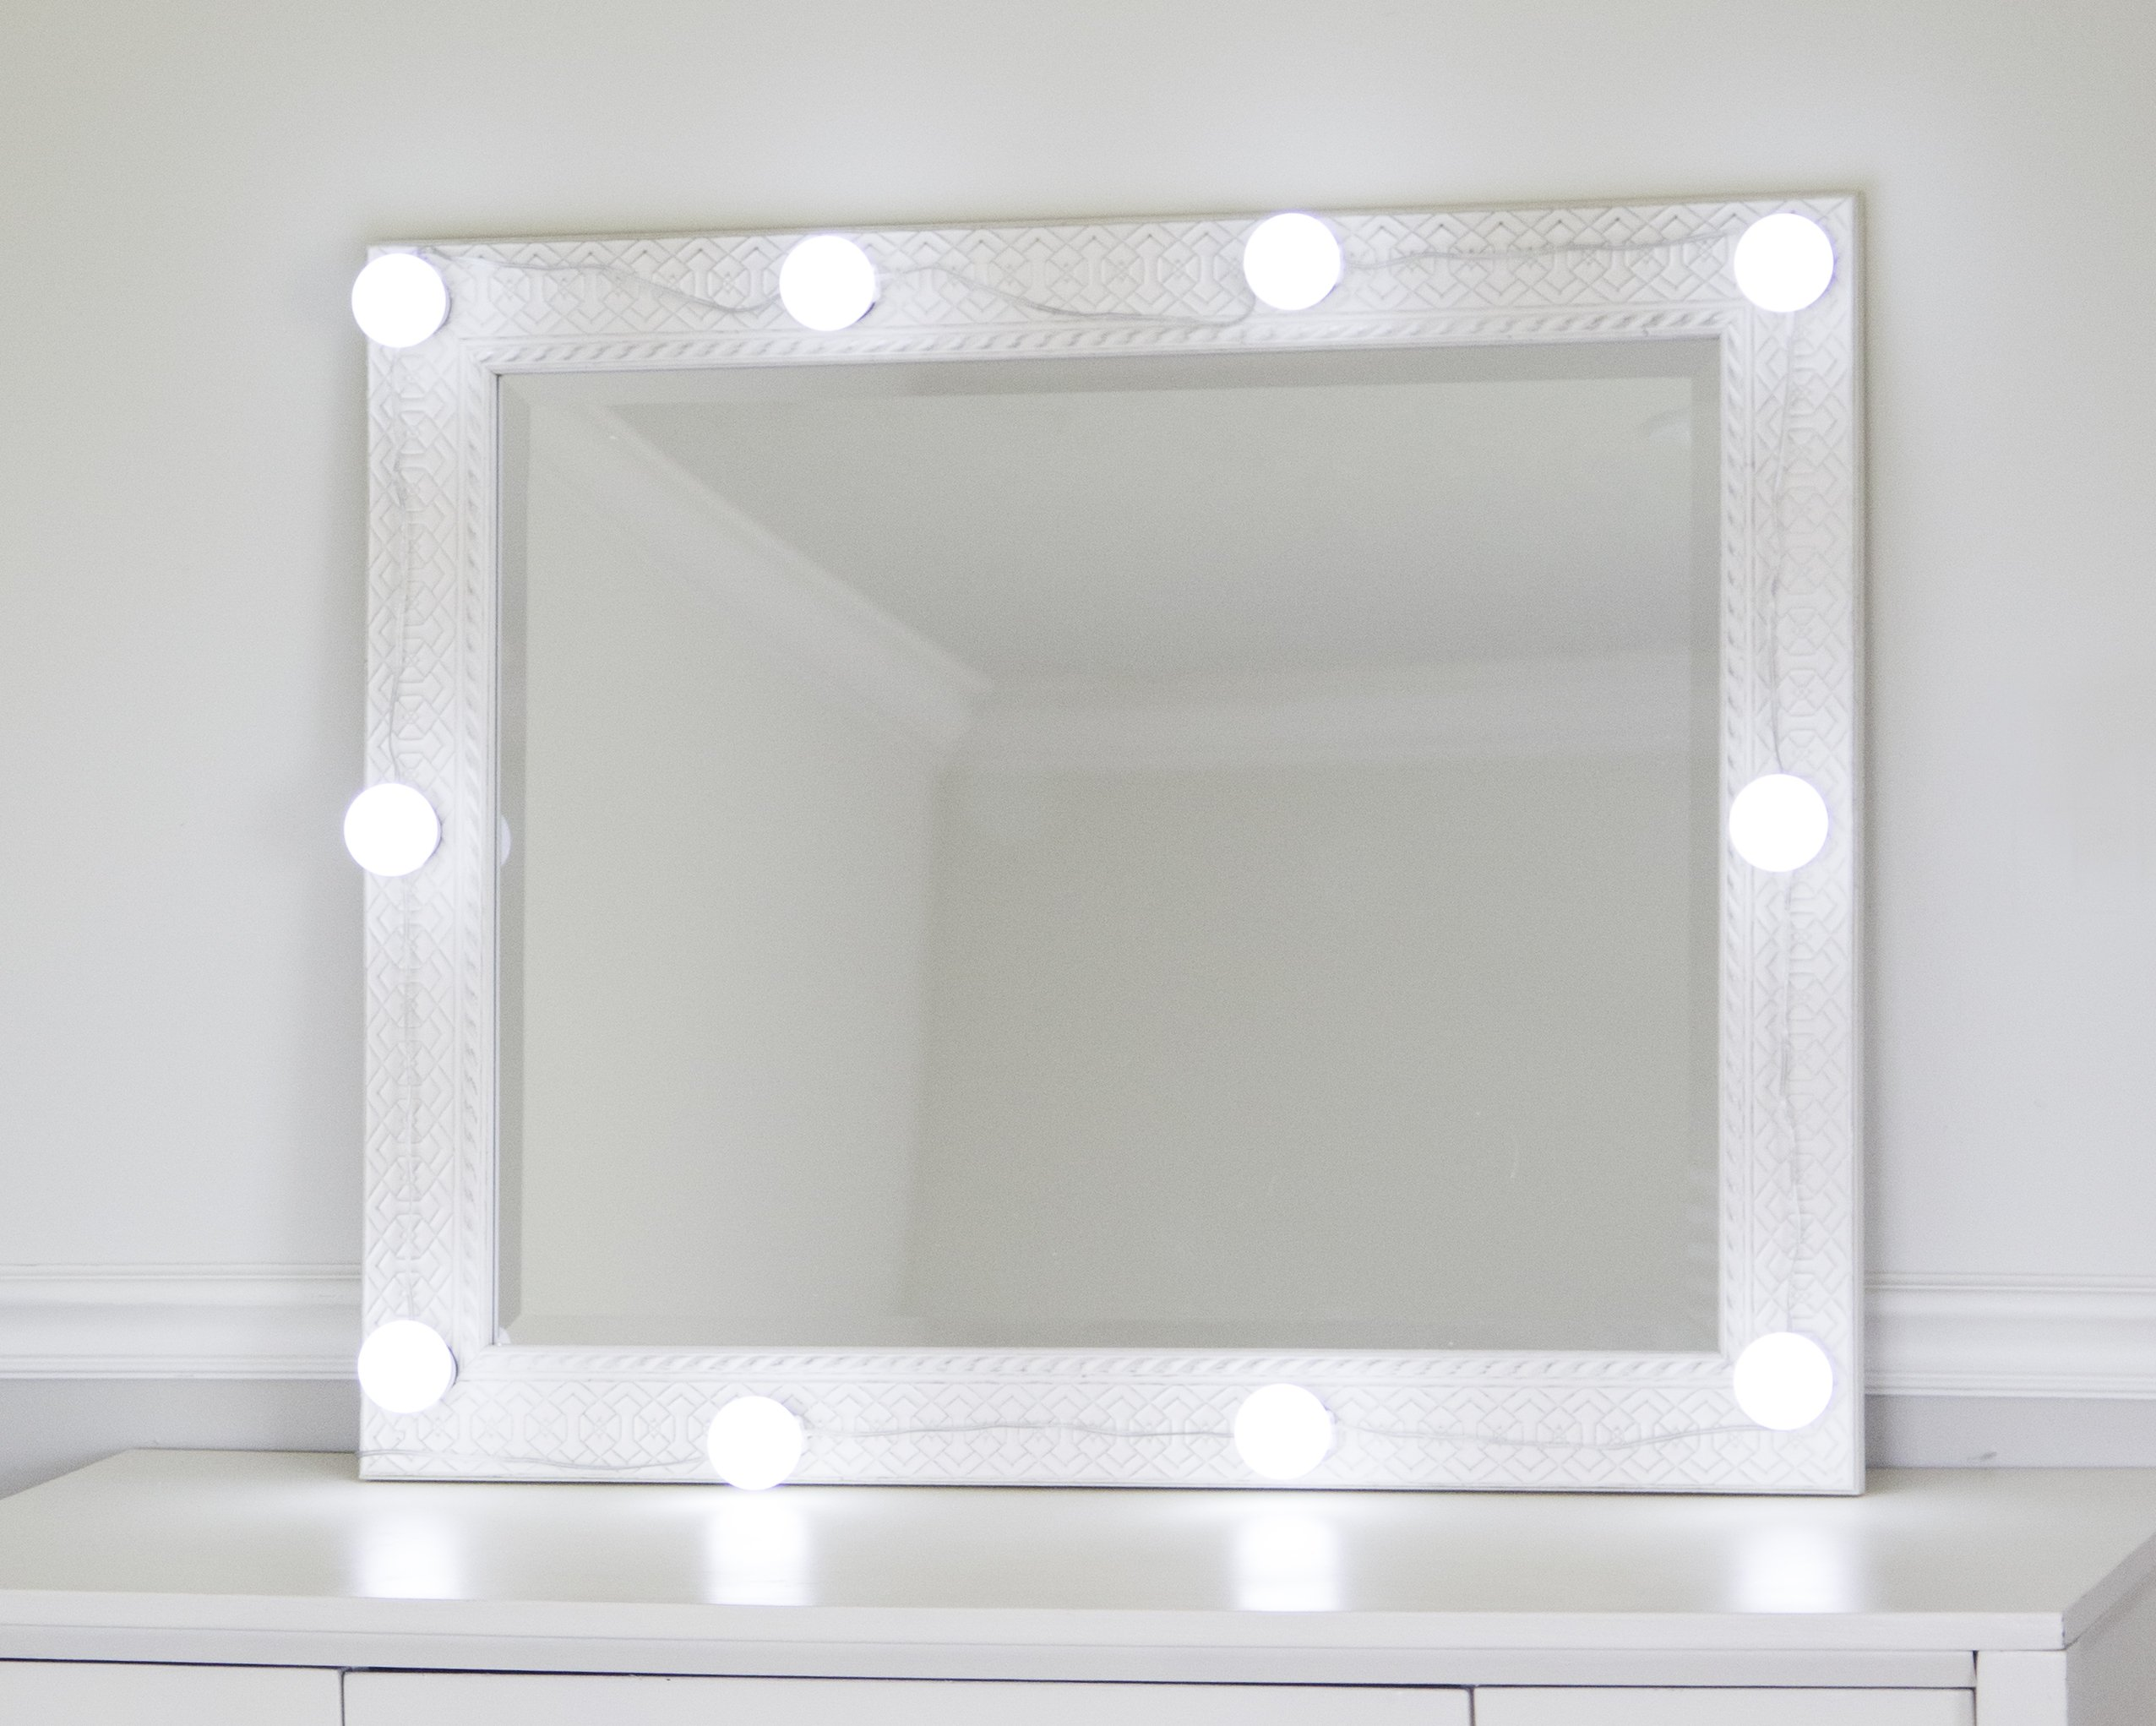 DIY Lighted Hollywood Makeup Mirror Kit | 10 Dimmable LED Light Bulbs | 10x Magnifying Mirror Free | For Bedroom, Bathroom, or Dressing Table, Stage Makeup, Precise Makeup Application